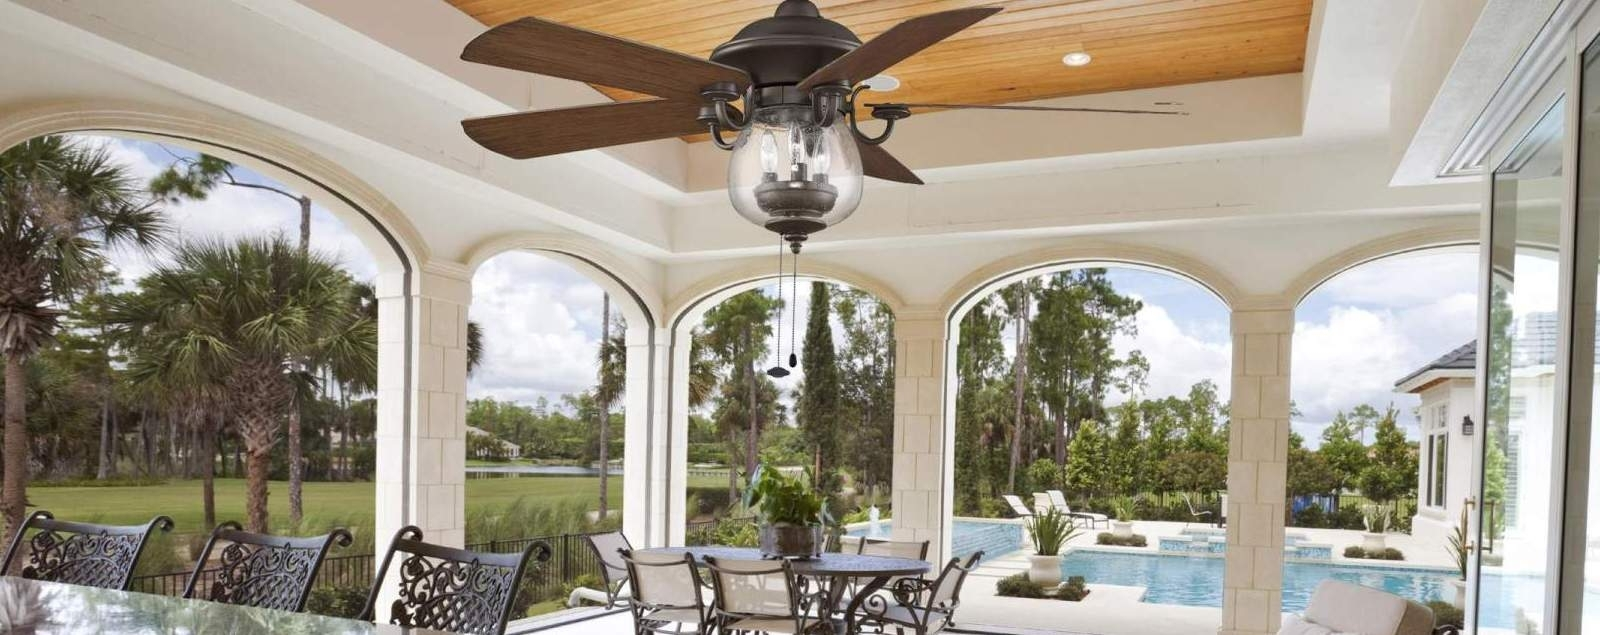 Outdoor Ceiling Fans – Shop Wet, Dry, And Damp Rated Outdoor Fans Within Newest Outdoor Ceiling Fans For Coastal Areas (View 9 of 20)